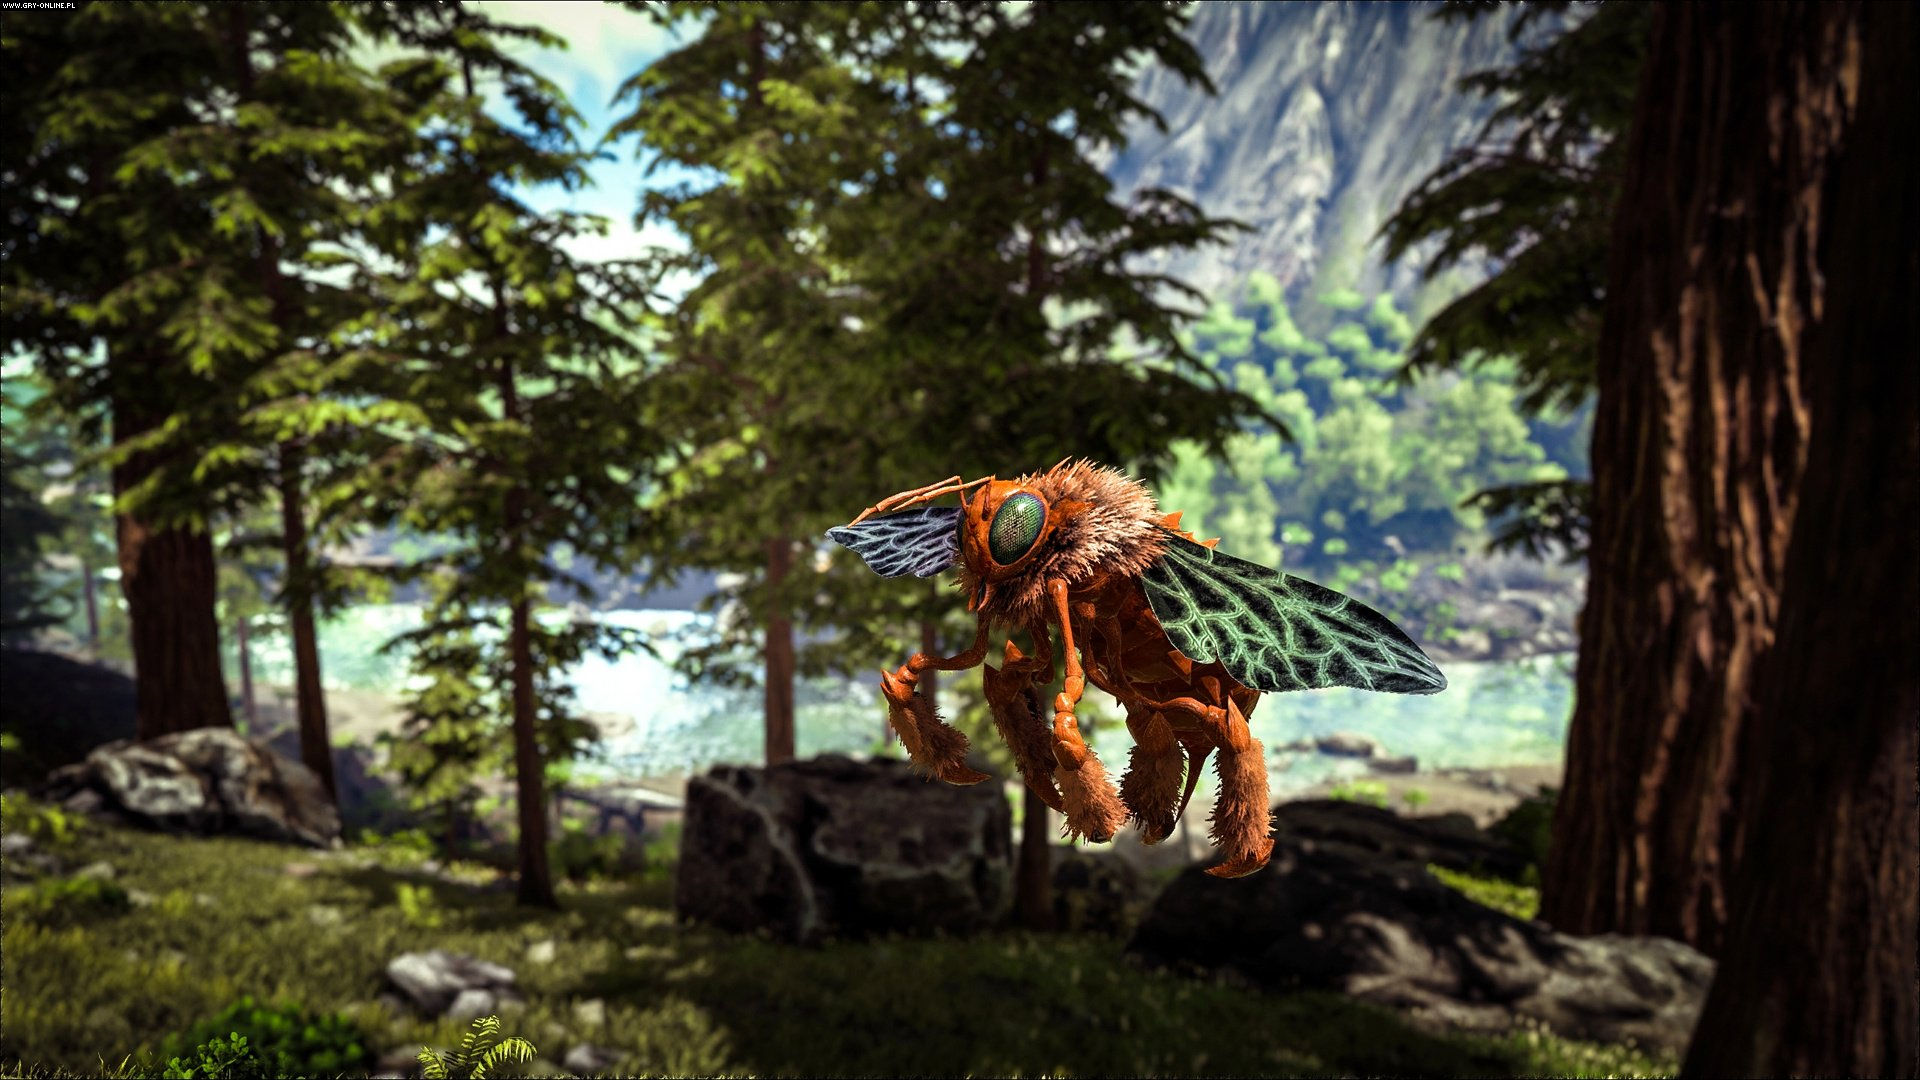 ARK: Survival Evolved PC, PS4, XONE, Switch Gry Screen 45/148, Studio Wildcard